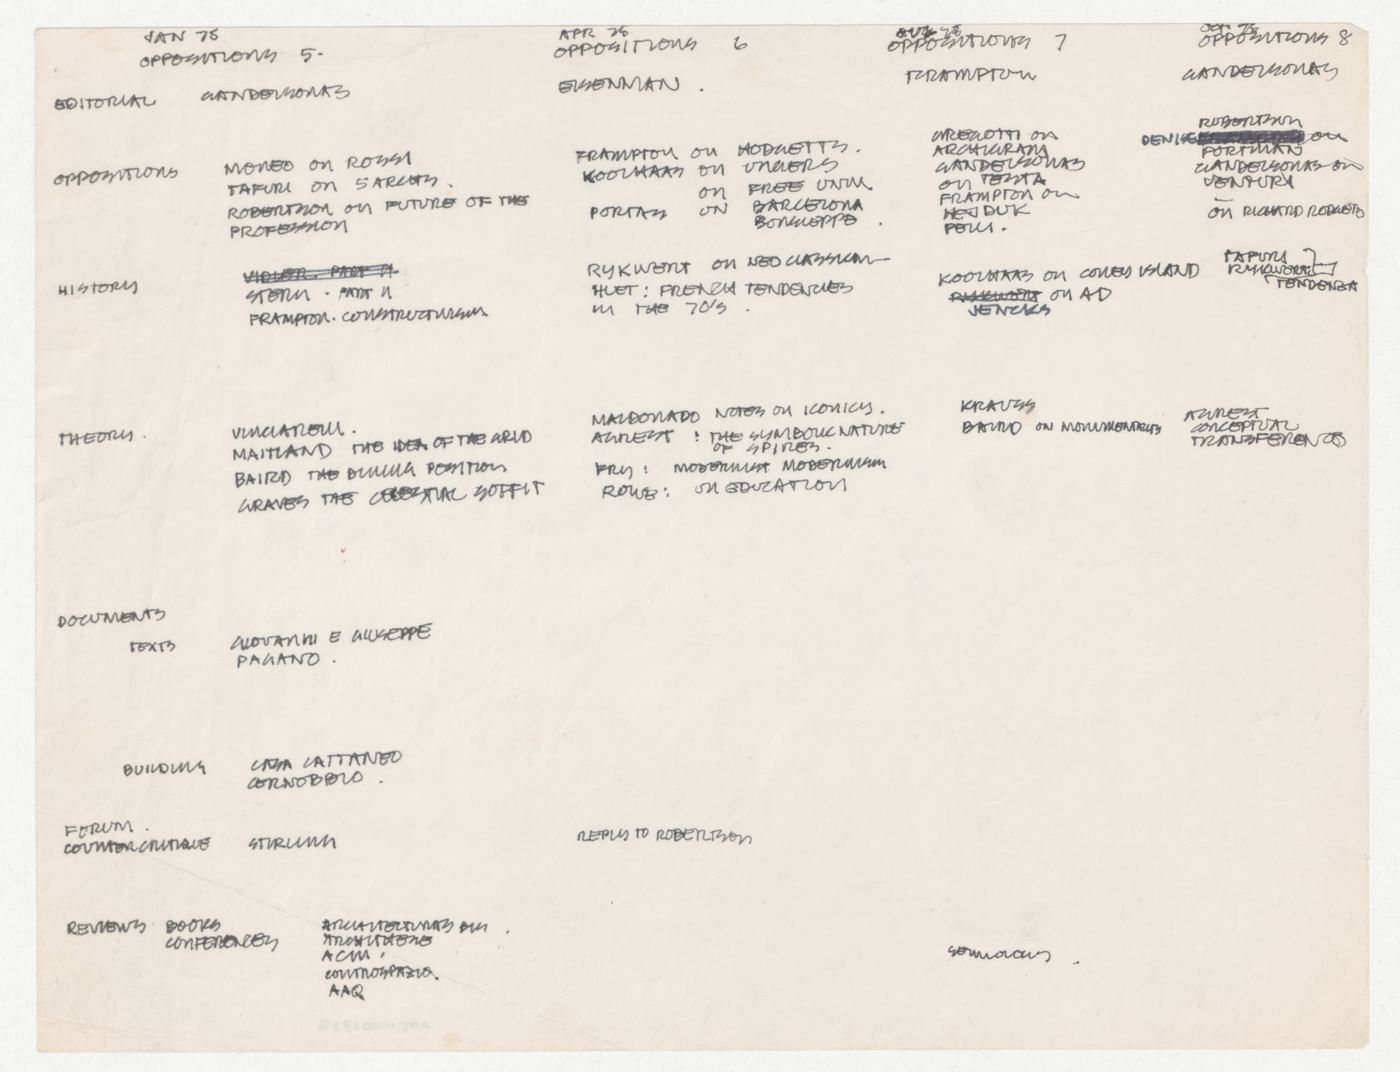 Notes for content of Oppositions no. 5, no. 6, no. 7 and no. 8 with annotations by Peter D. Eisenman